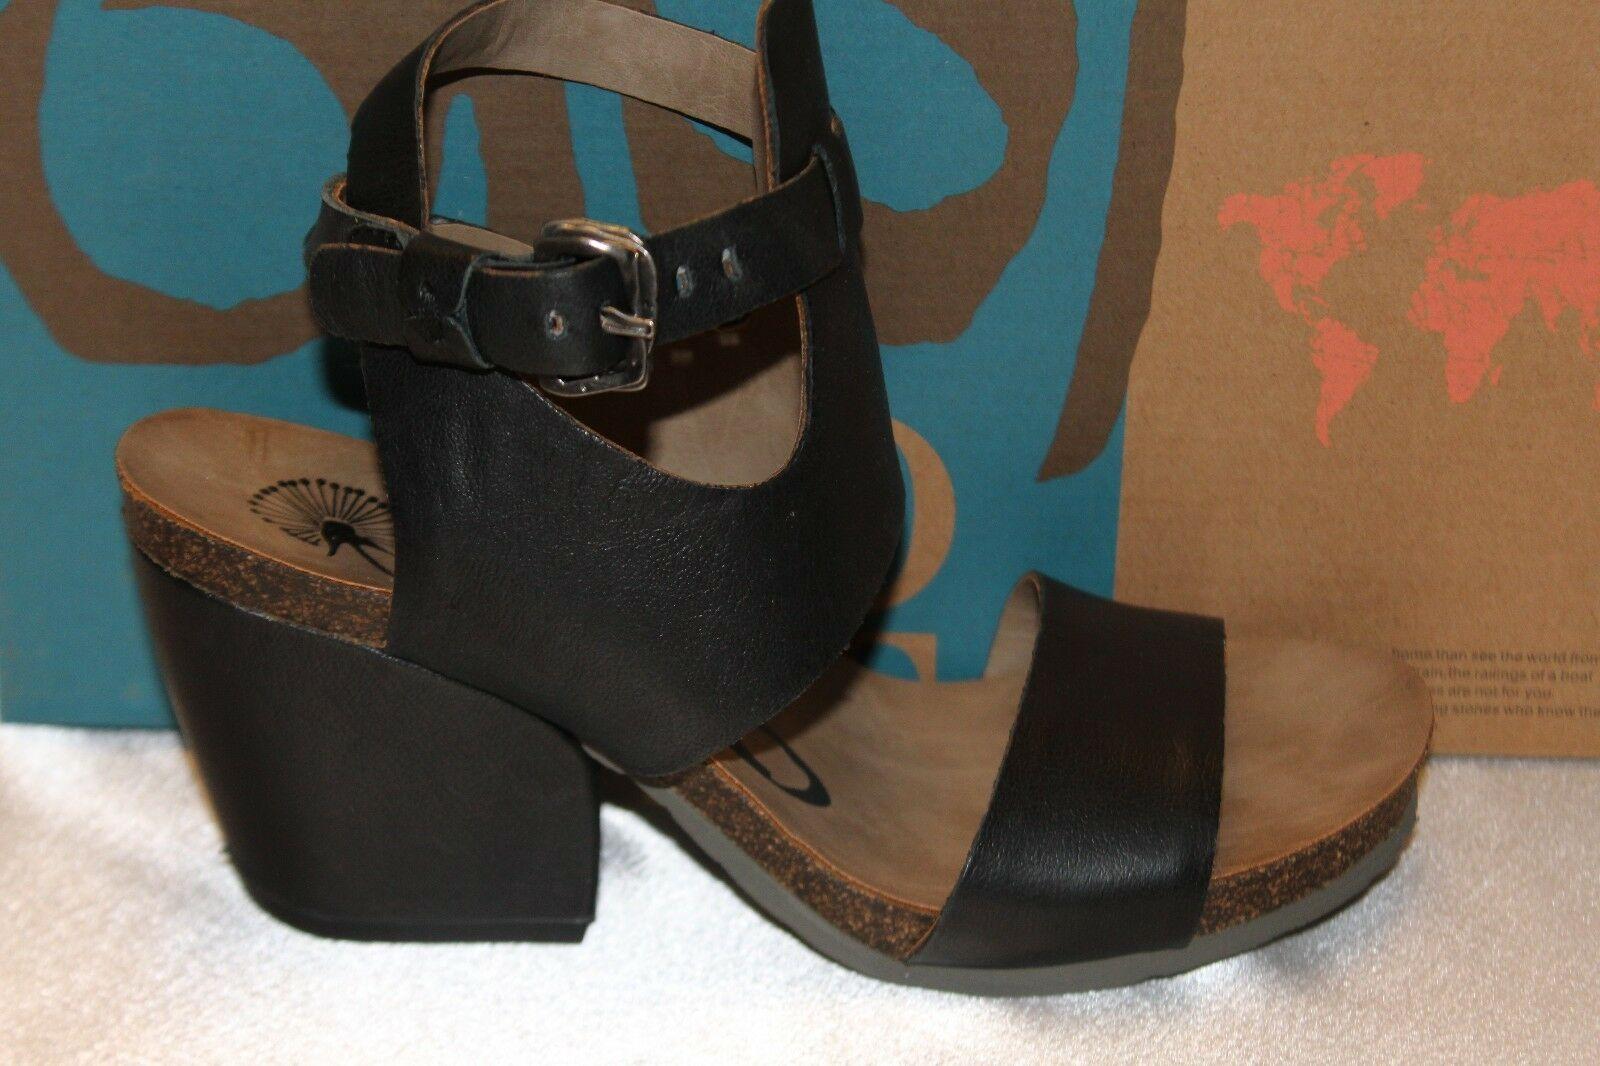 NEW NEW NEW  NIB  OTBT Black Leather LEE Ankle Cuff Sandal Chunky Heel Sz  6 6.5 7.5 3b9090